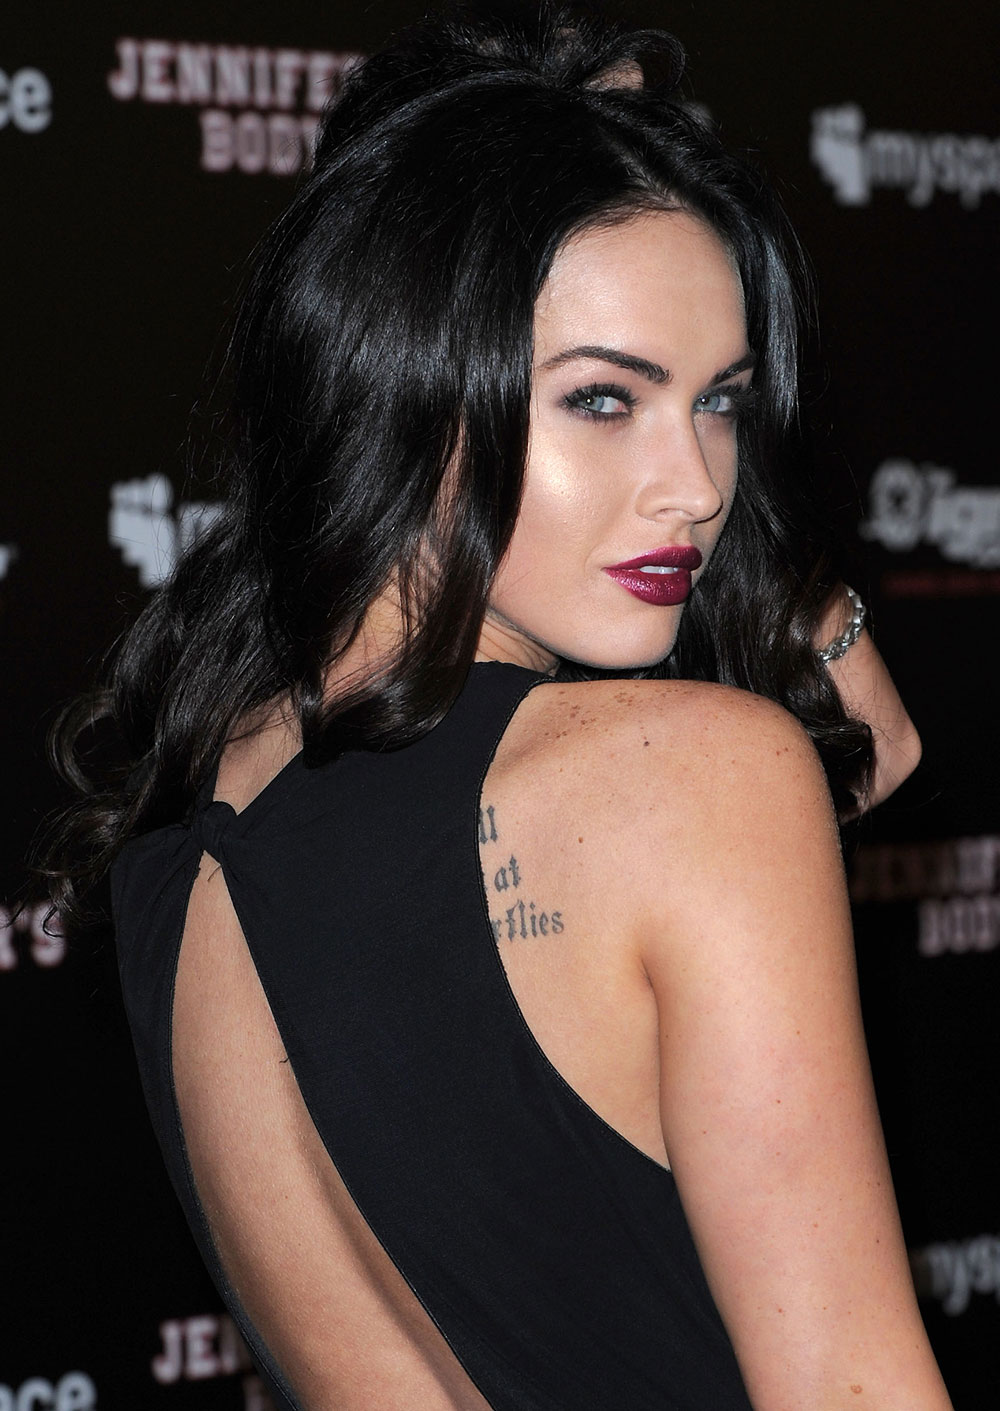 megan fox at myspace ign jennifers body party